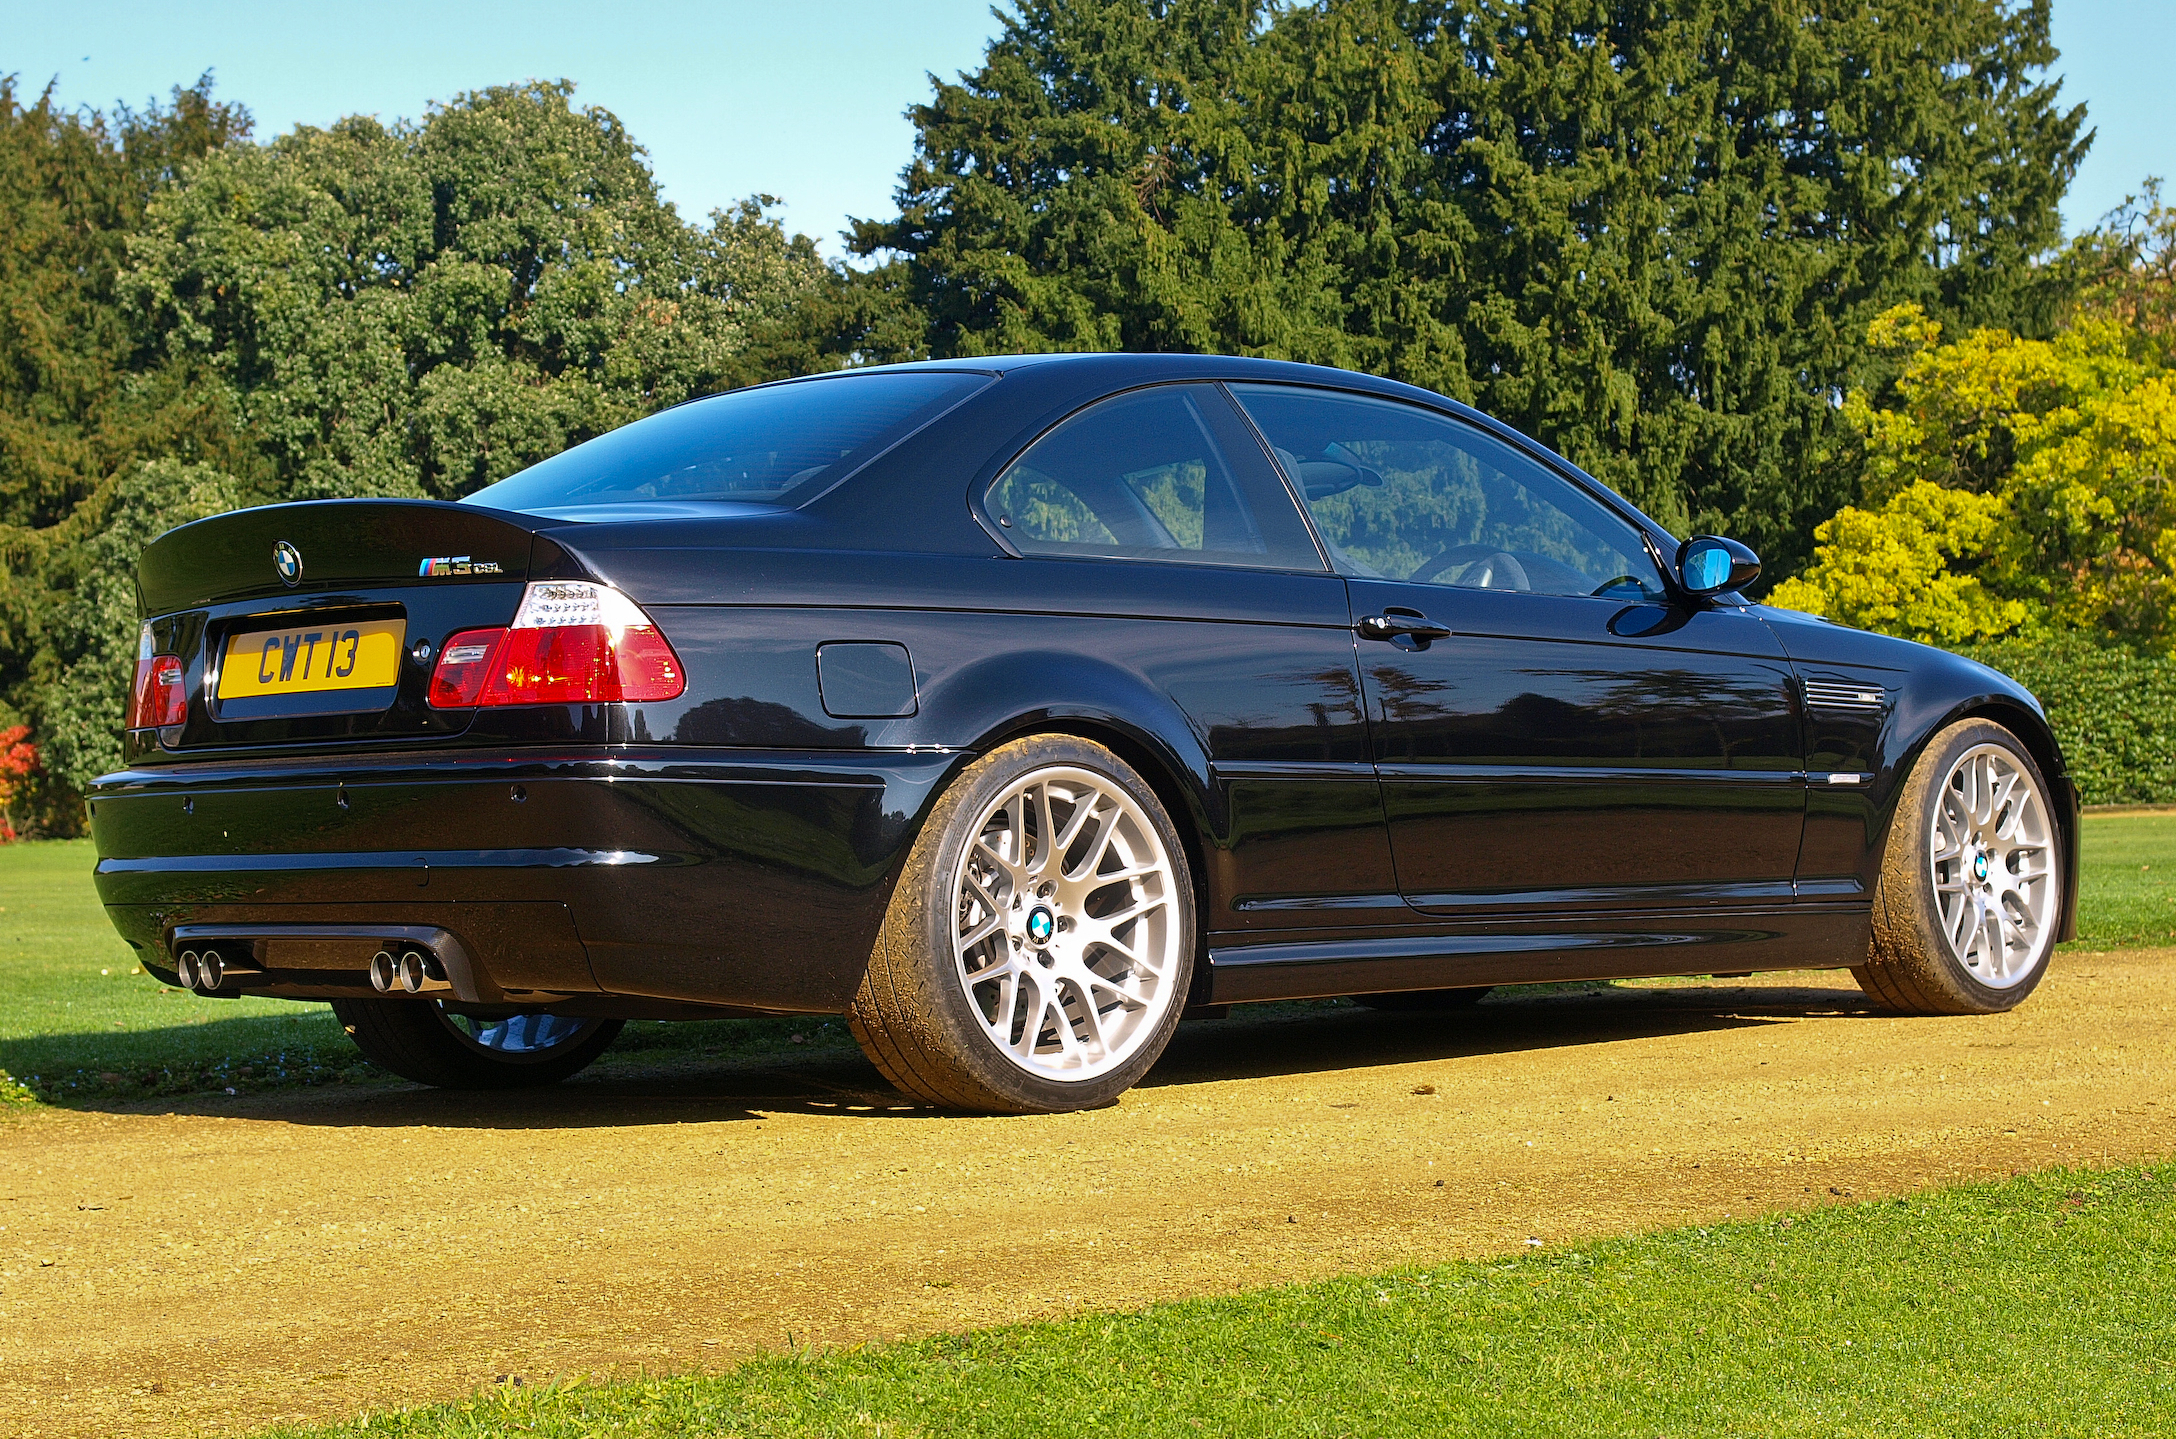 file black bmw m3 csl e46 wikimedia commons. Black Bedroom Furniture Sets. Home Design Ideas